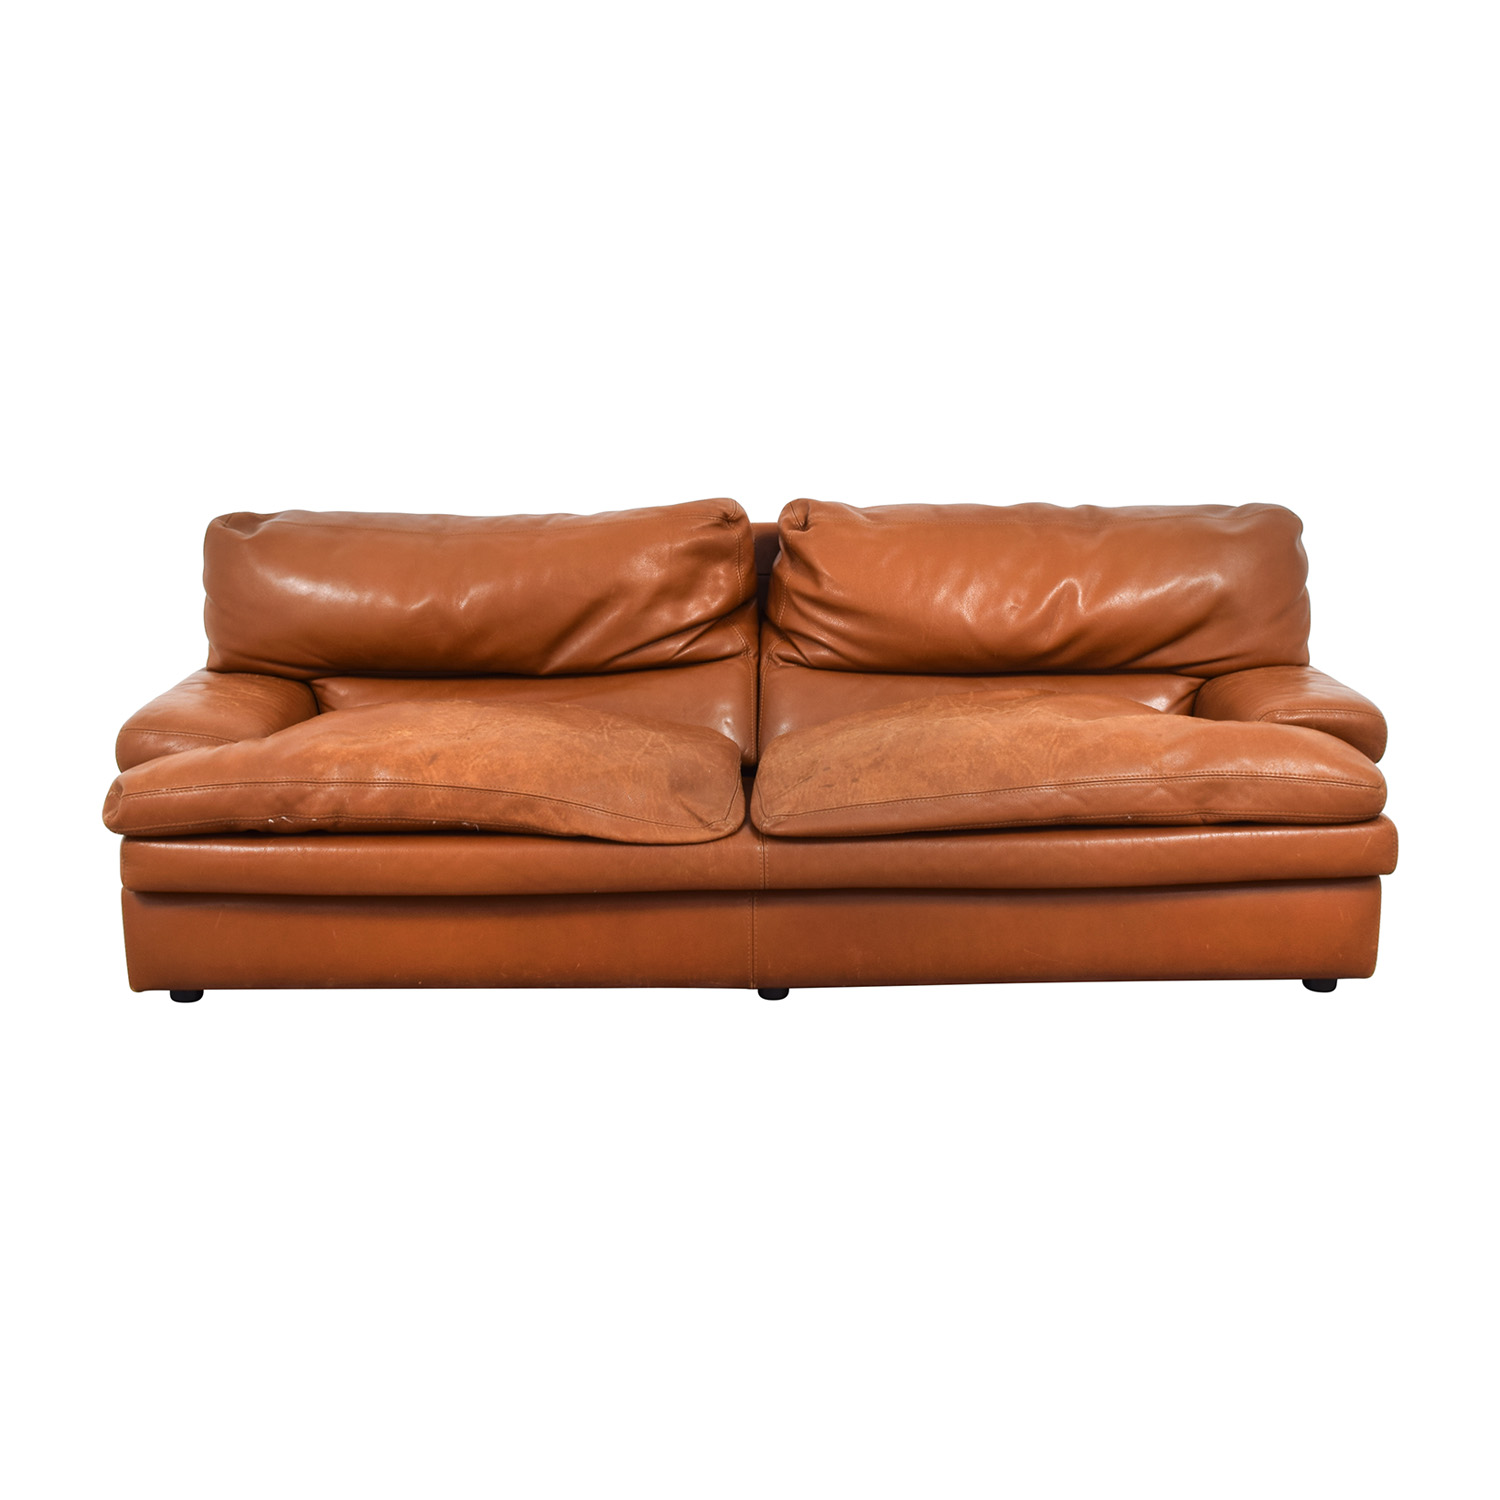 81% OFF - Roche Bobois Roche Bobois Burnt Orange Leather Sofa / Sofas